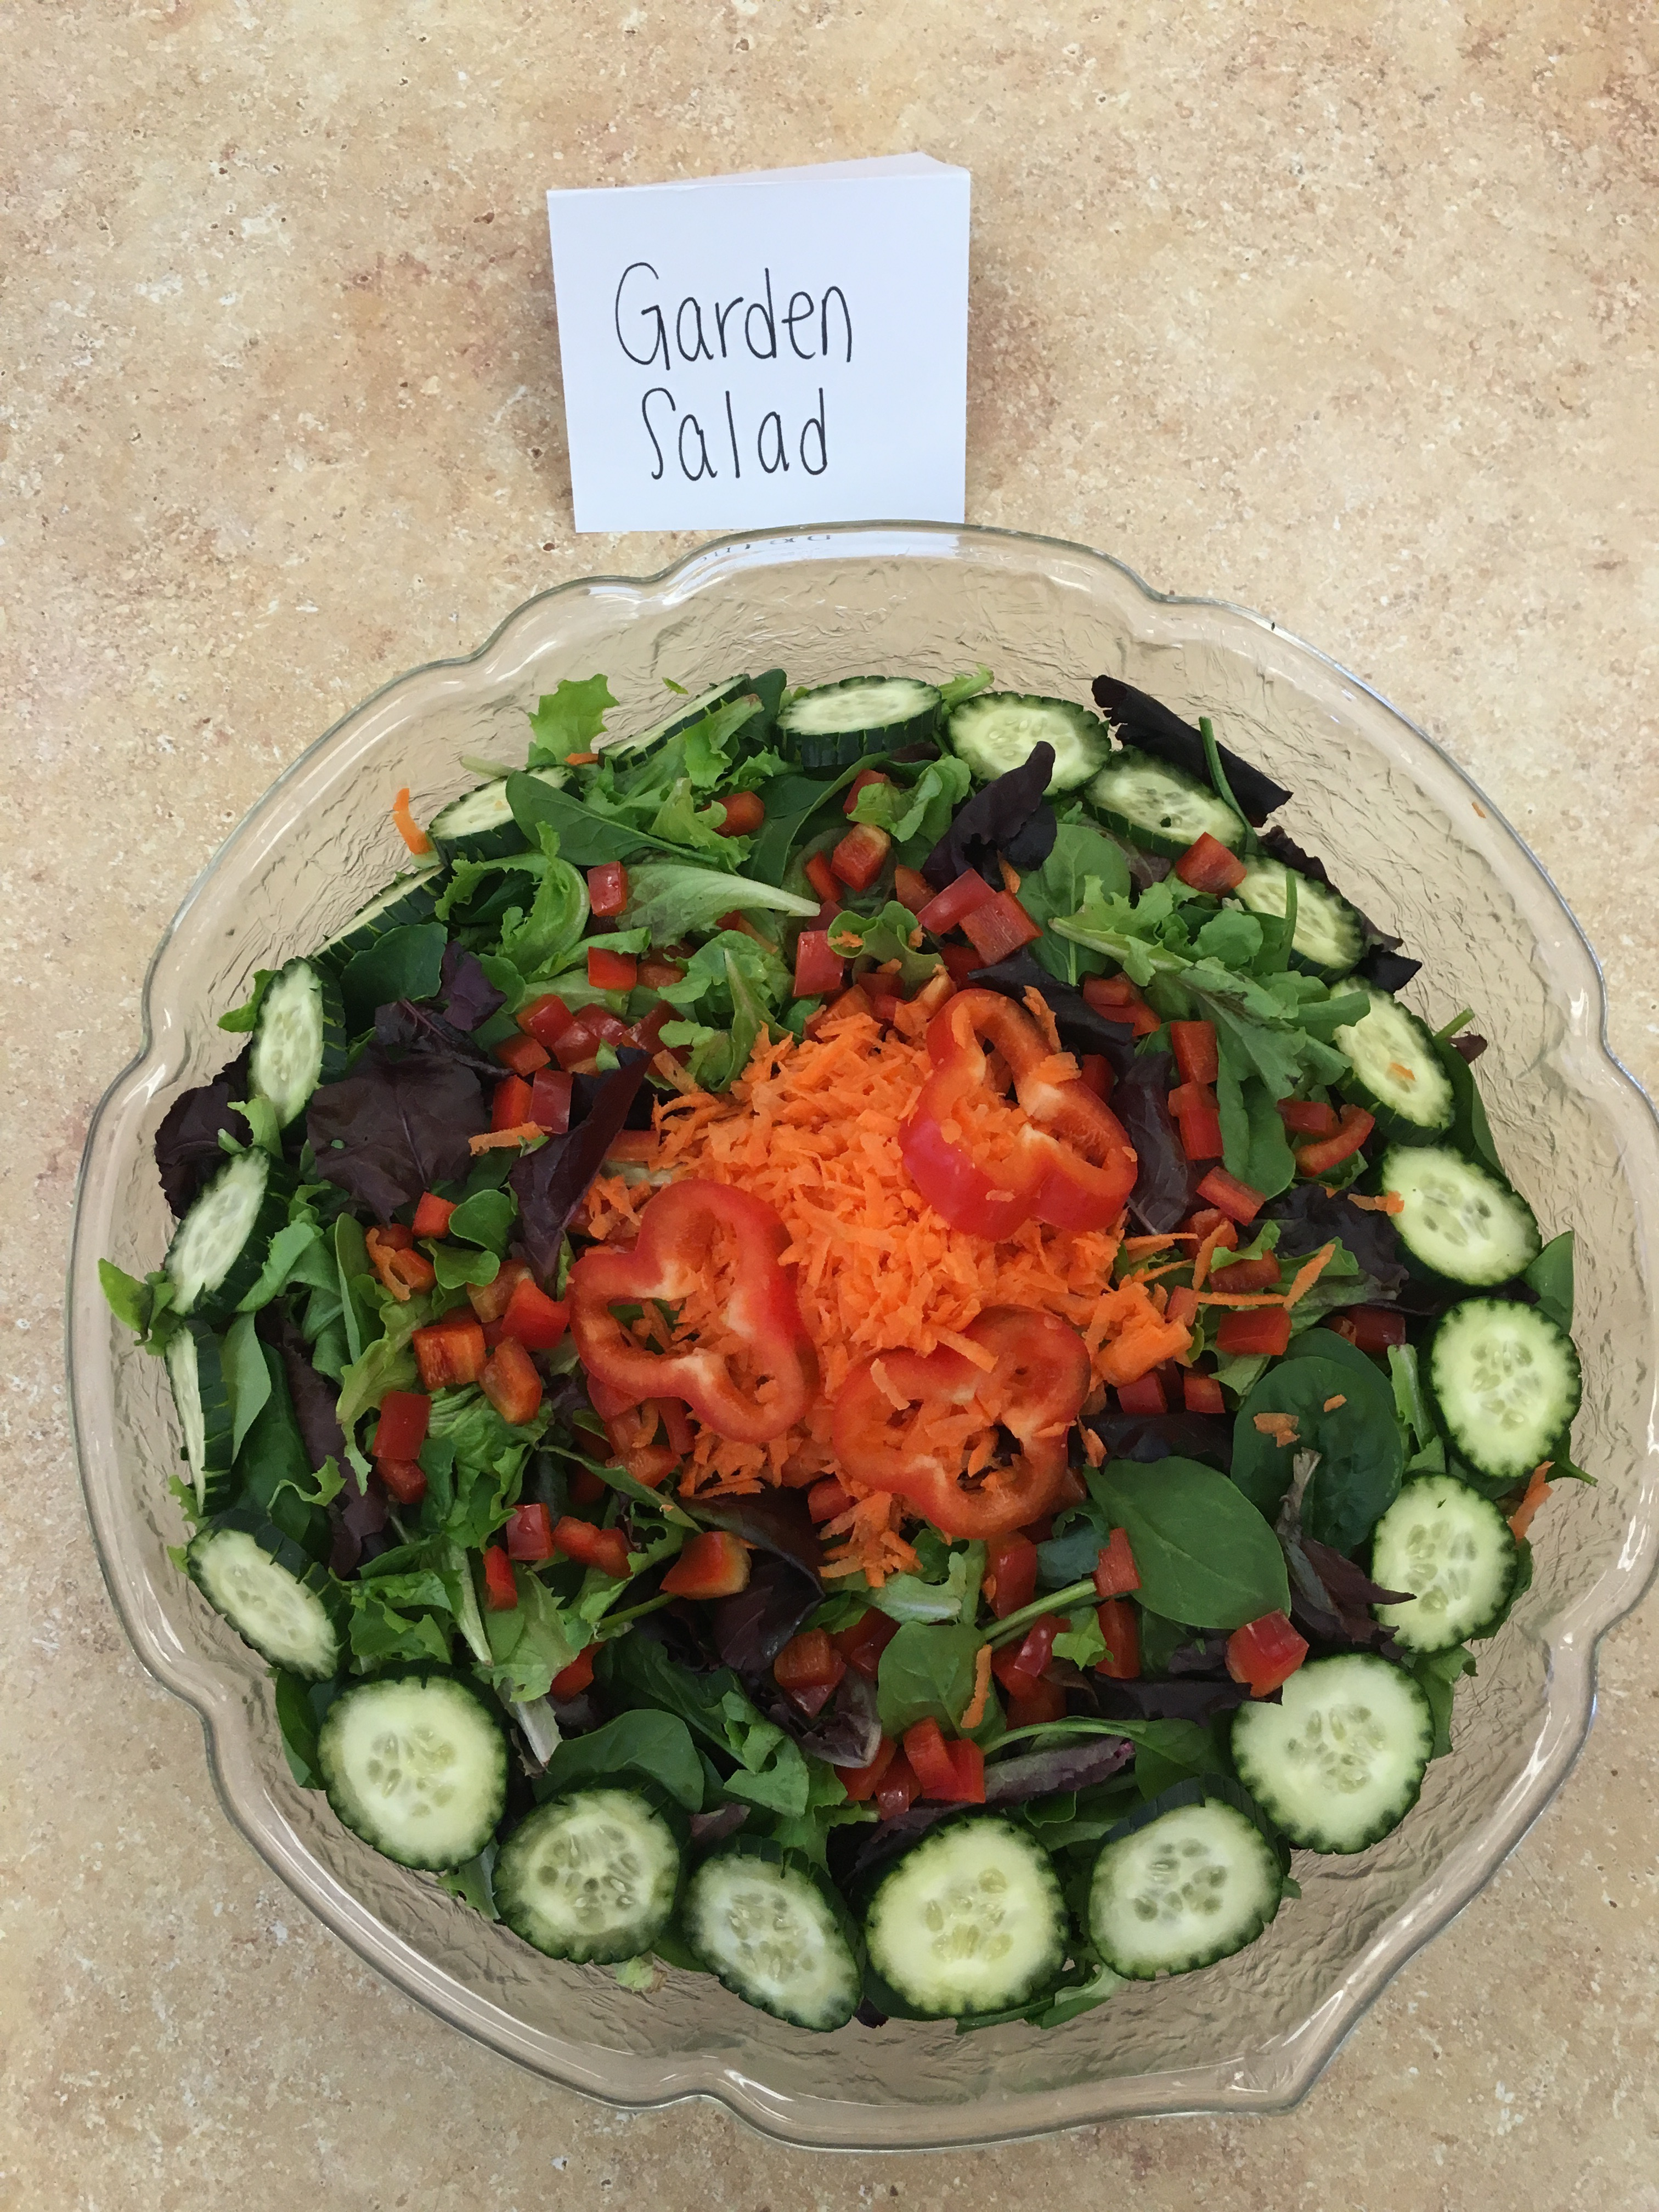 Image of a Garden Salad